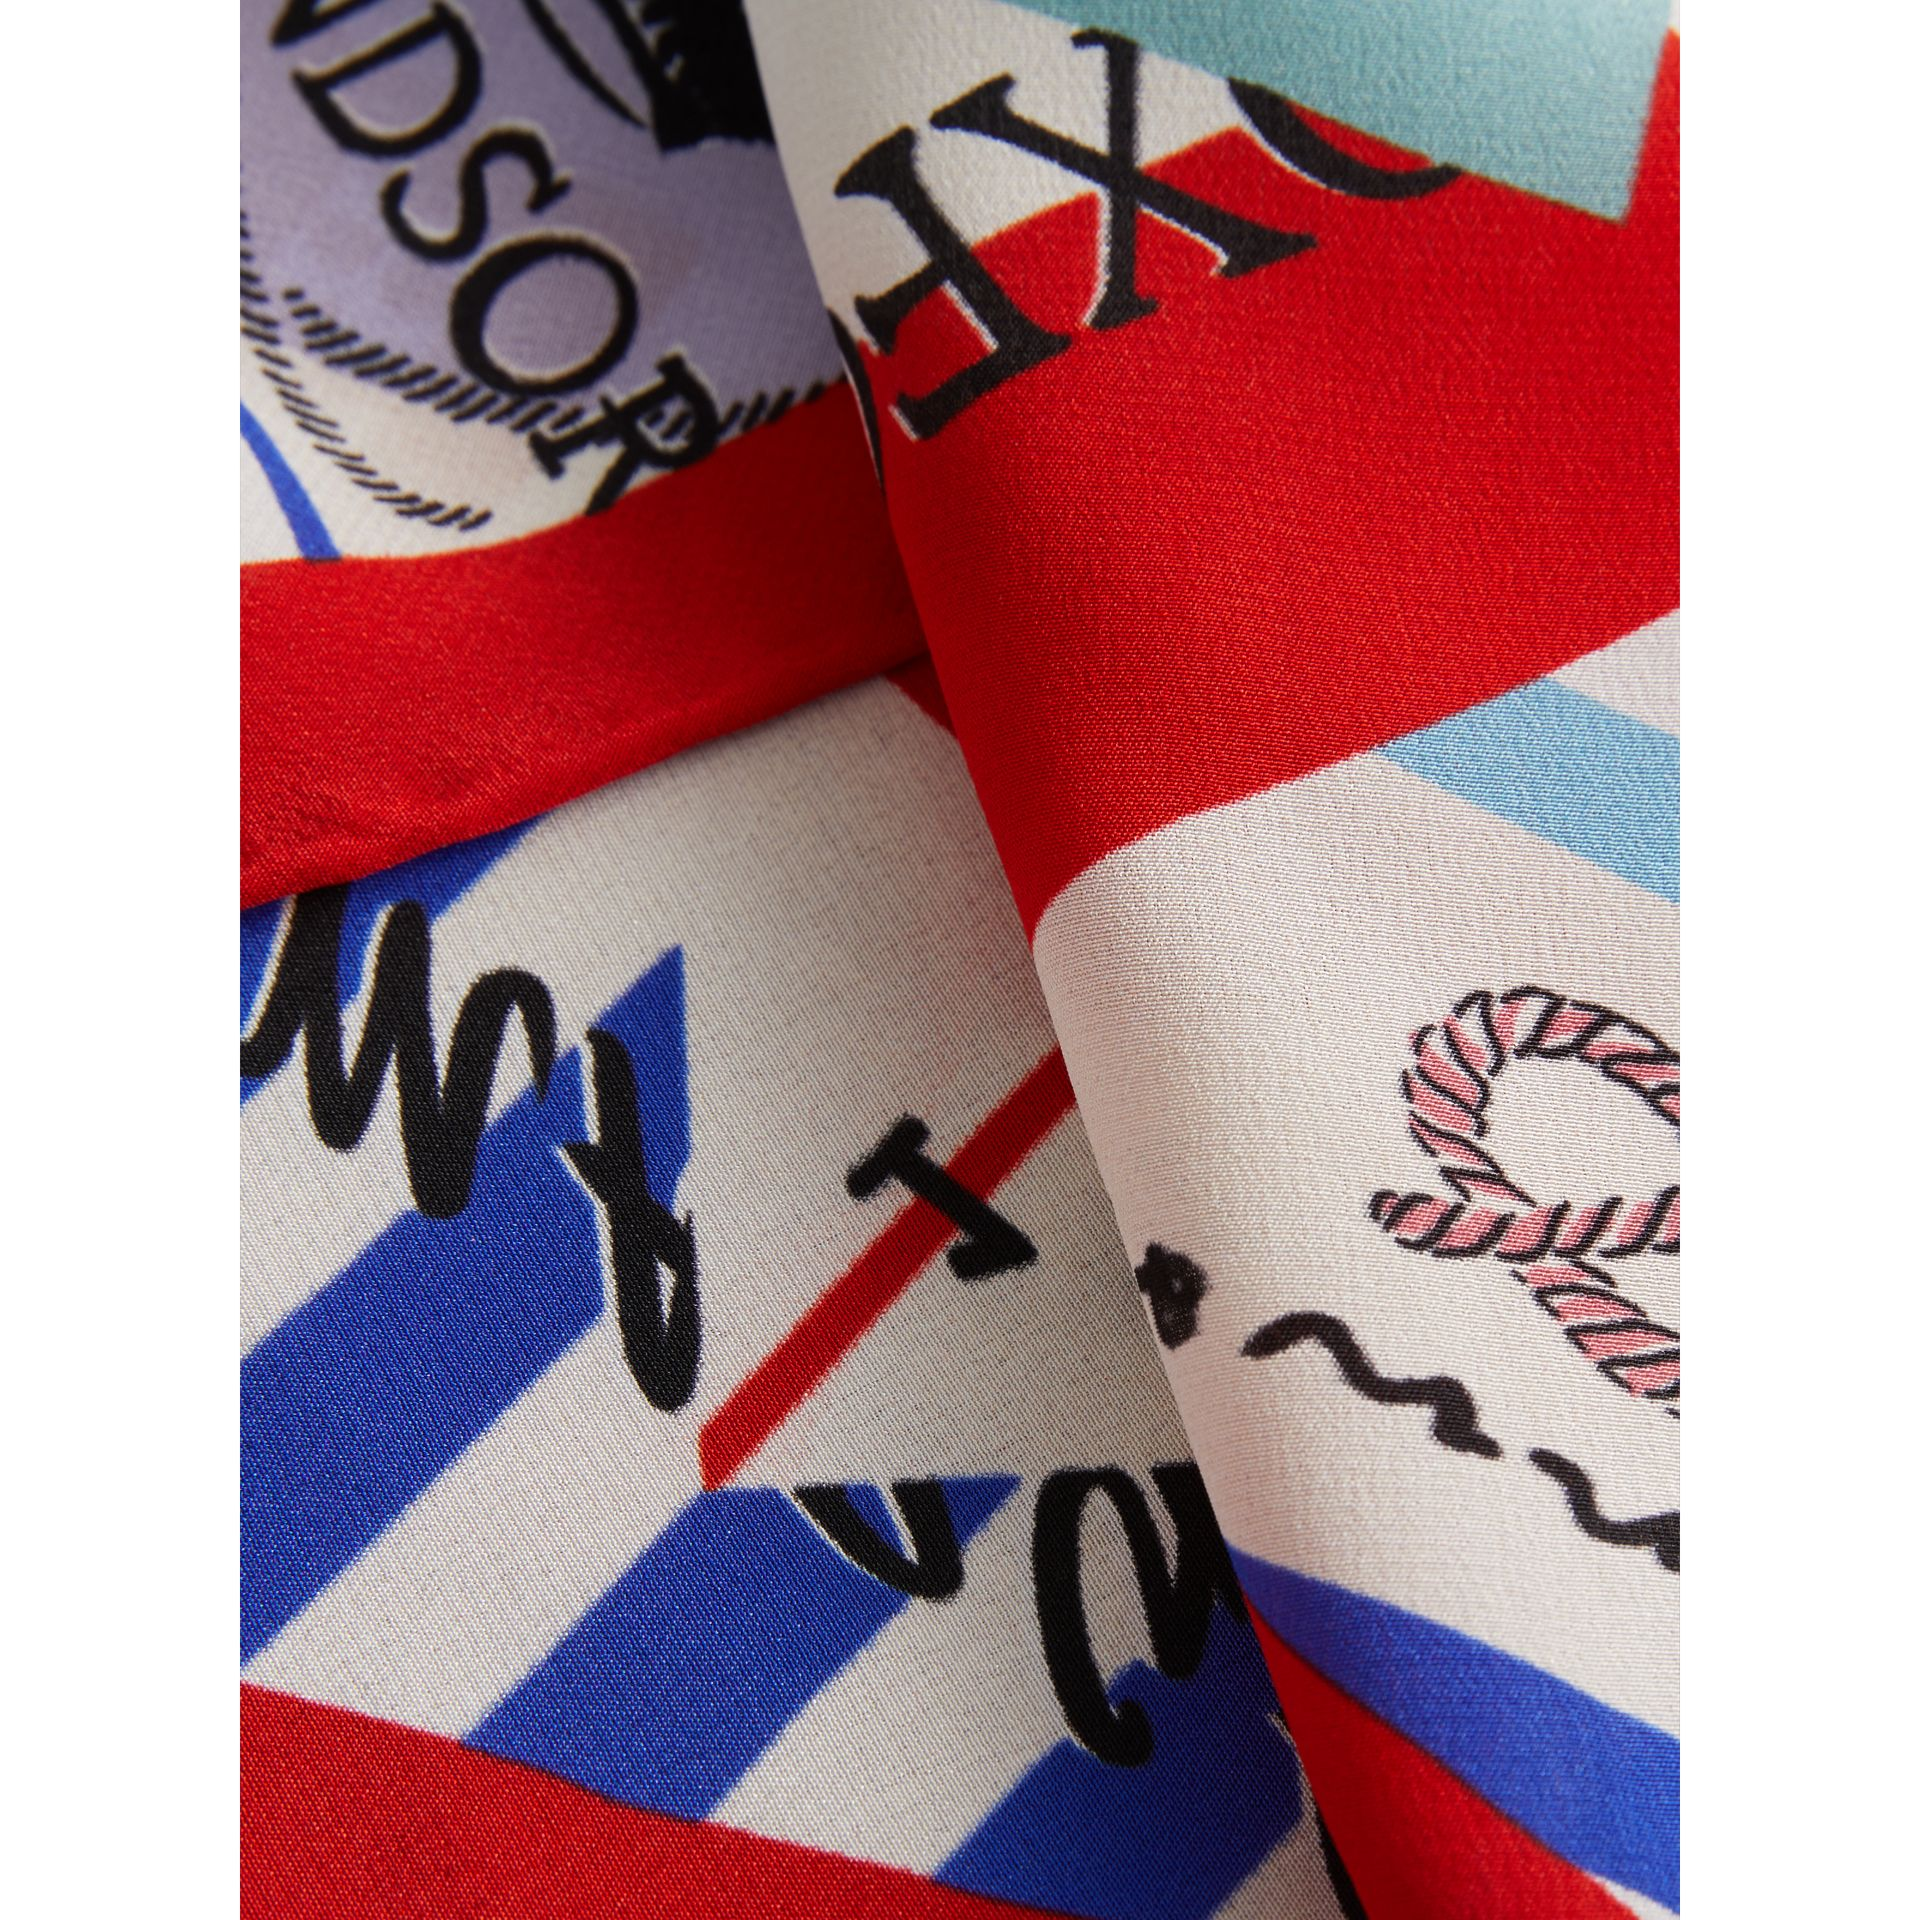 Ticket Stub Print Silk Scarf in Bright Red - Women | Burberry United Kingdom - gallery image 1